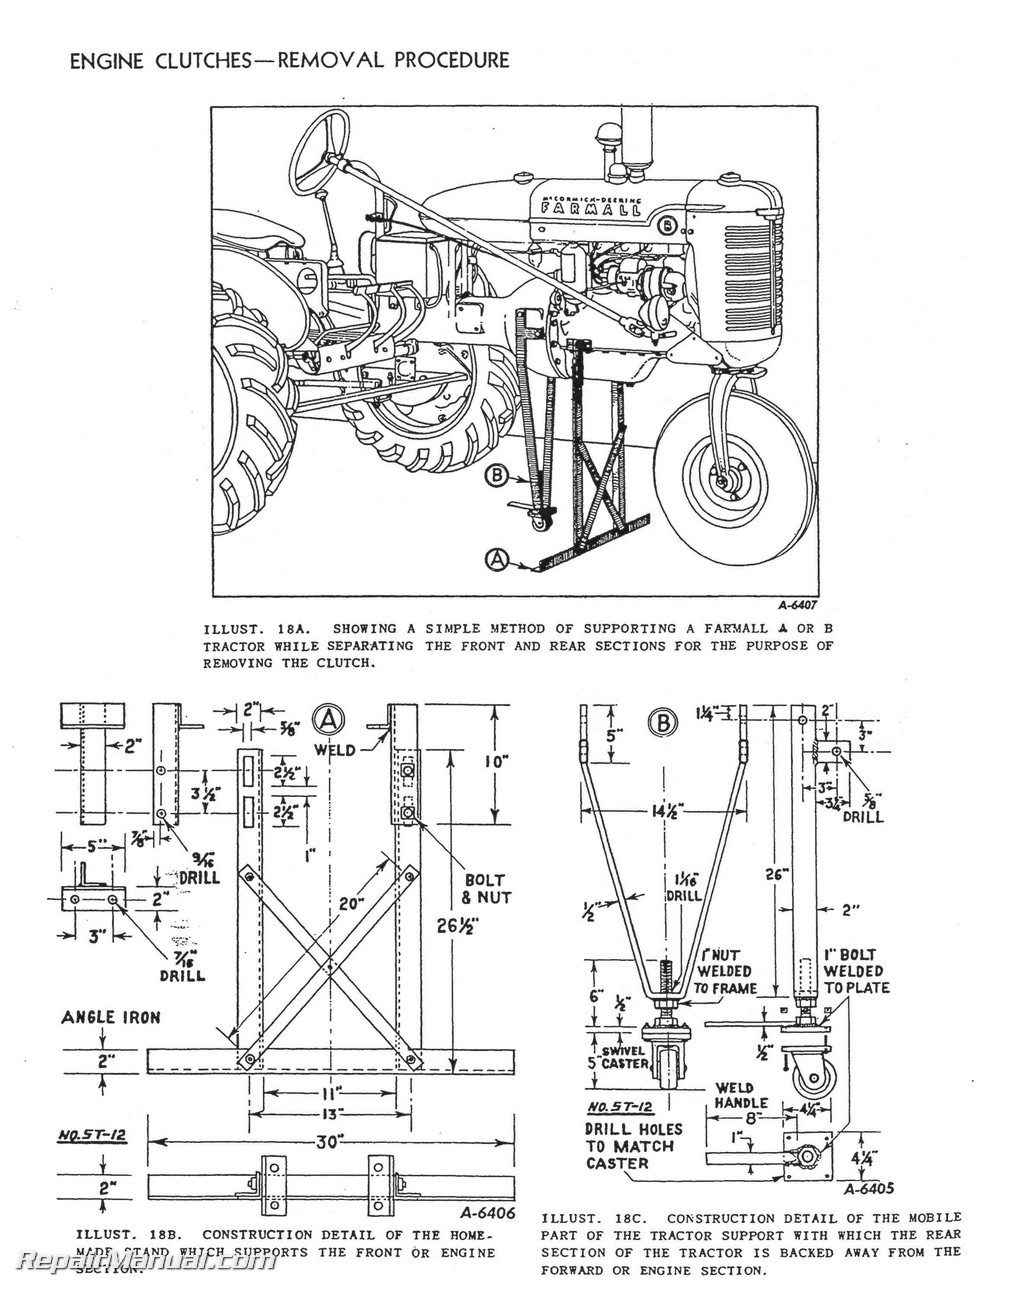 farmall m engine diagram farmall 300 engine diagram international harvester farmall tractor engine clutch ...